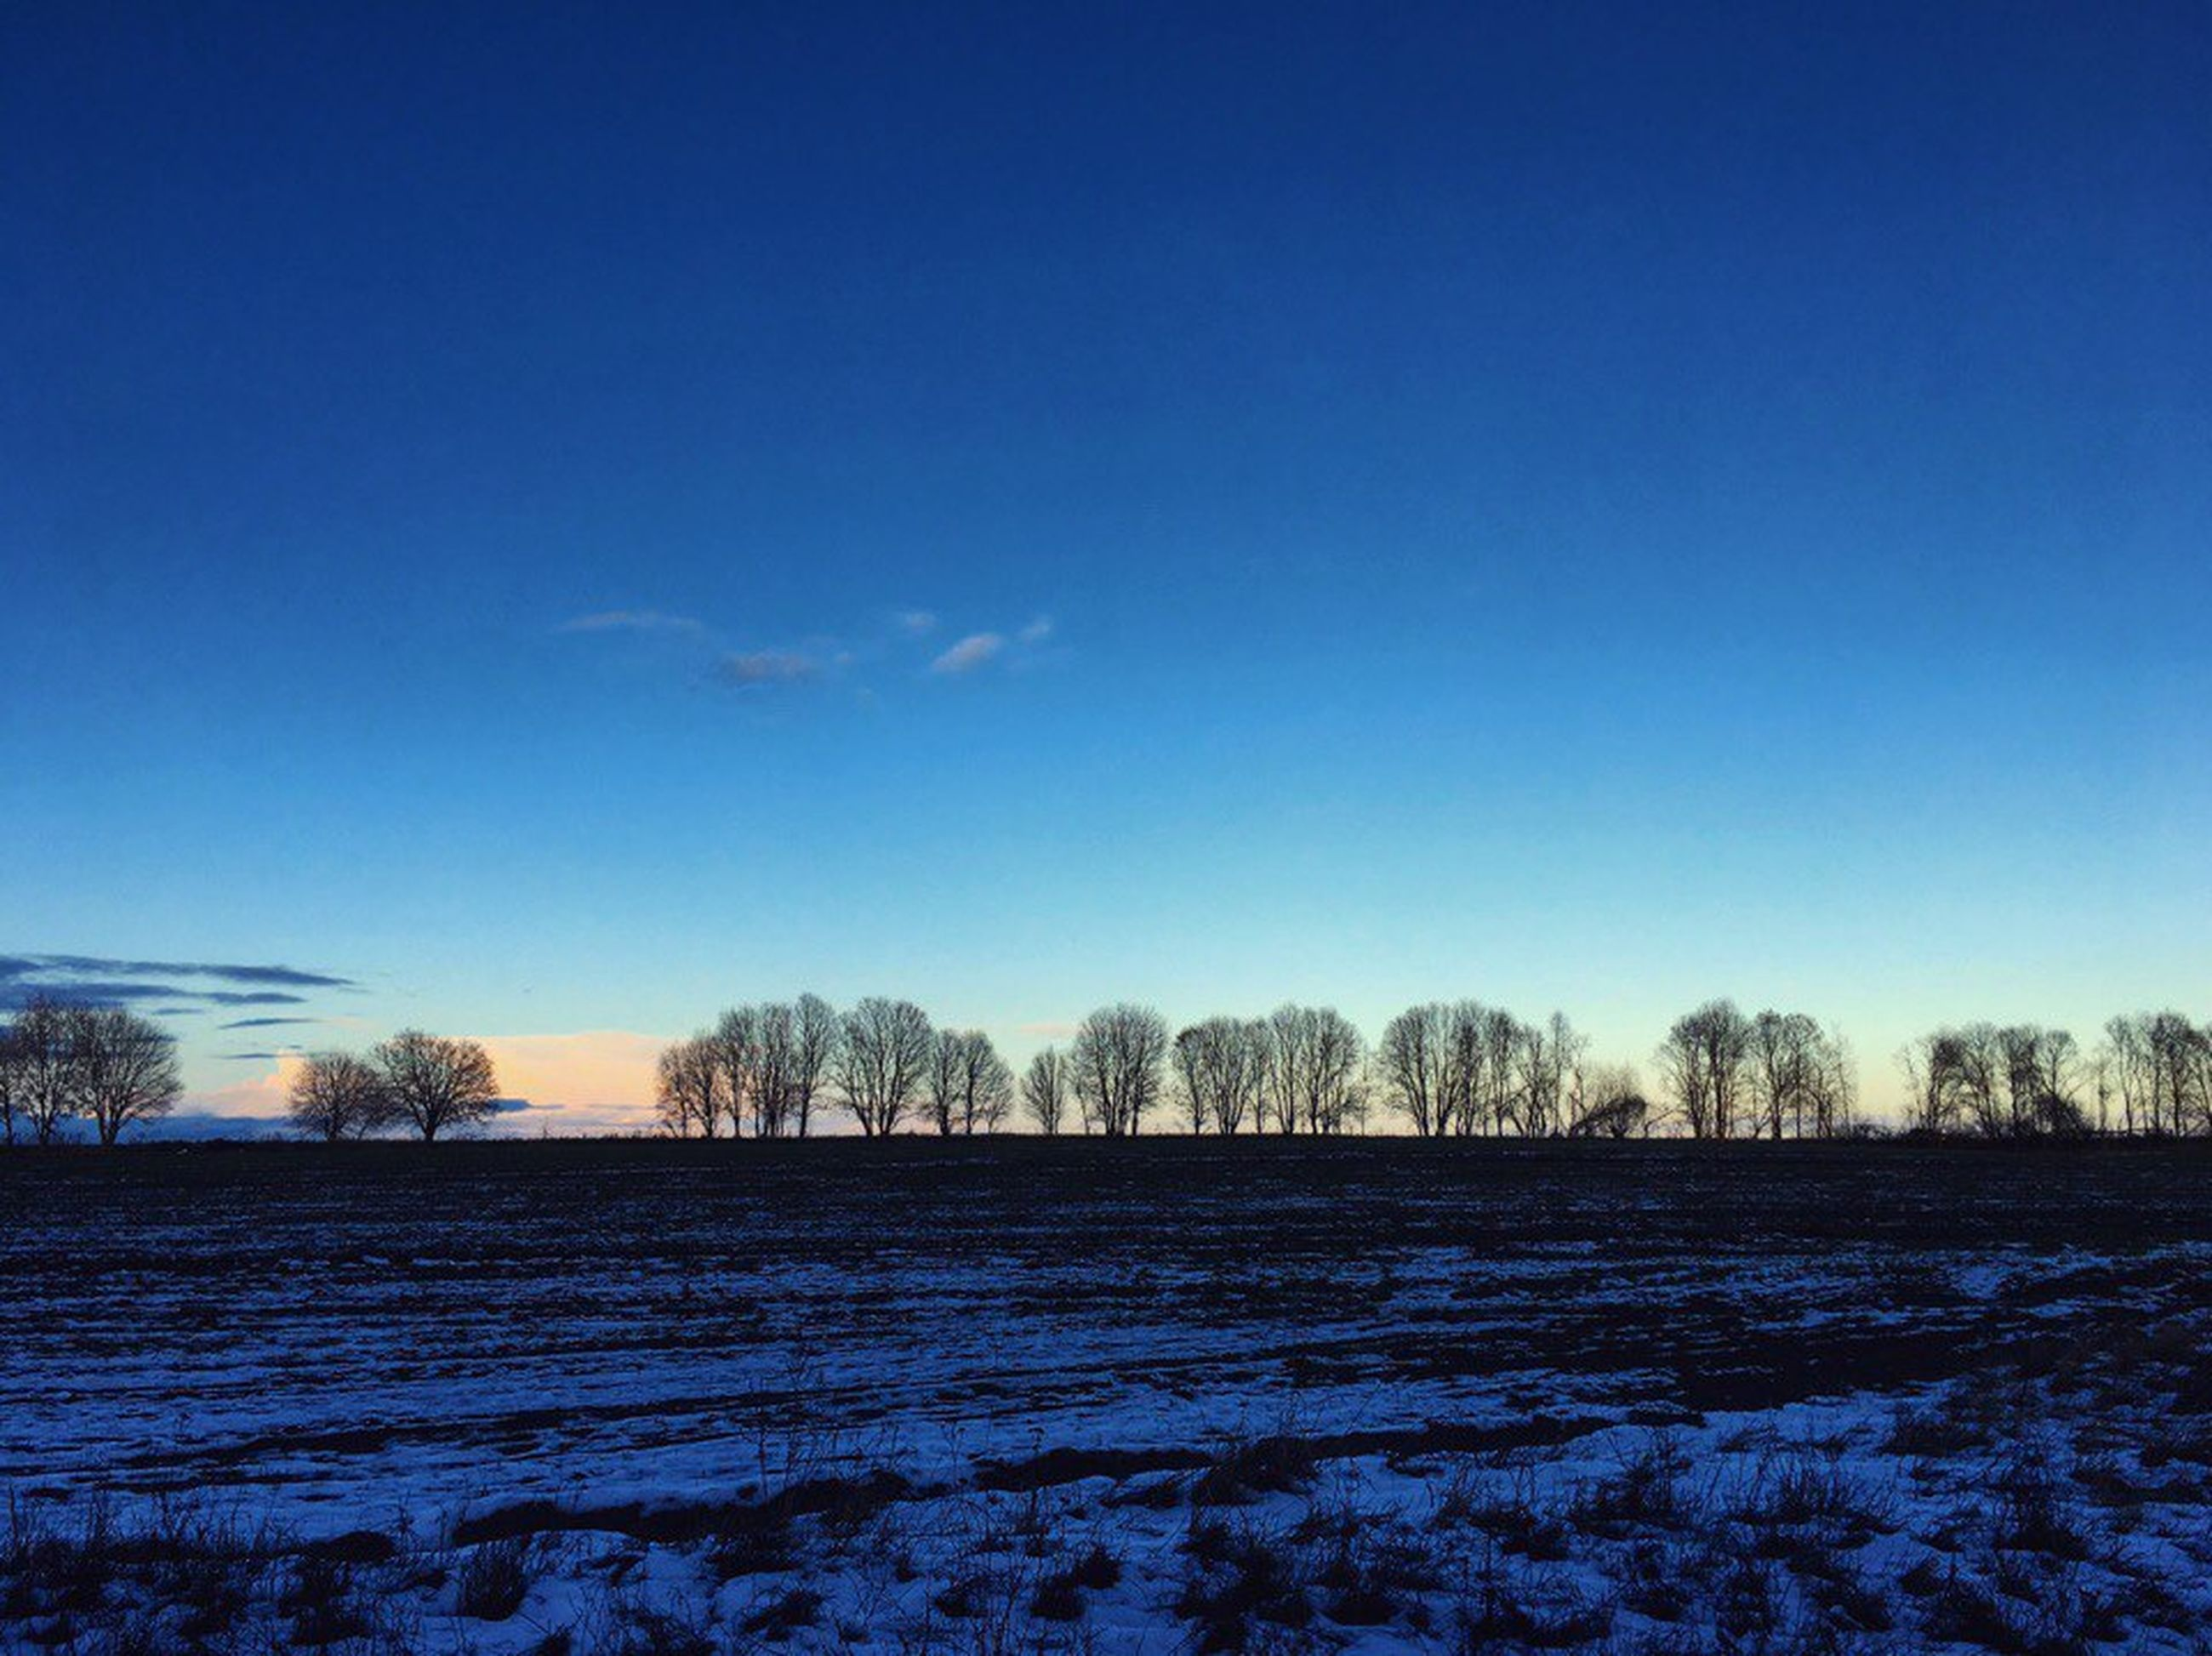 tree, blue, bare tree, nature, no people, sky, tranquility, tranquil scene, rural scene, field, winter, beauty in nature, snow, outdoors, cold temperature, scenics, agriculture, day, landscape